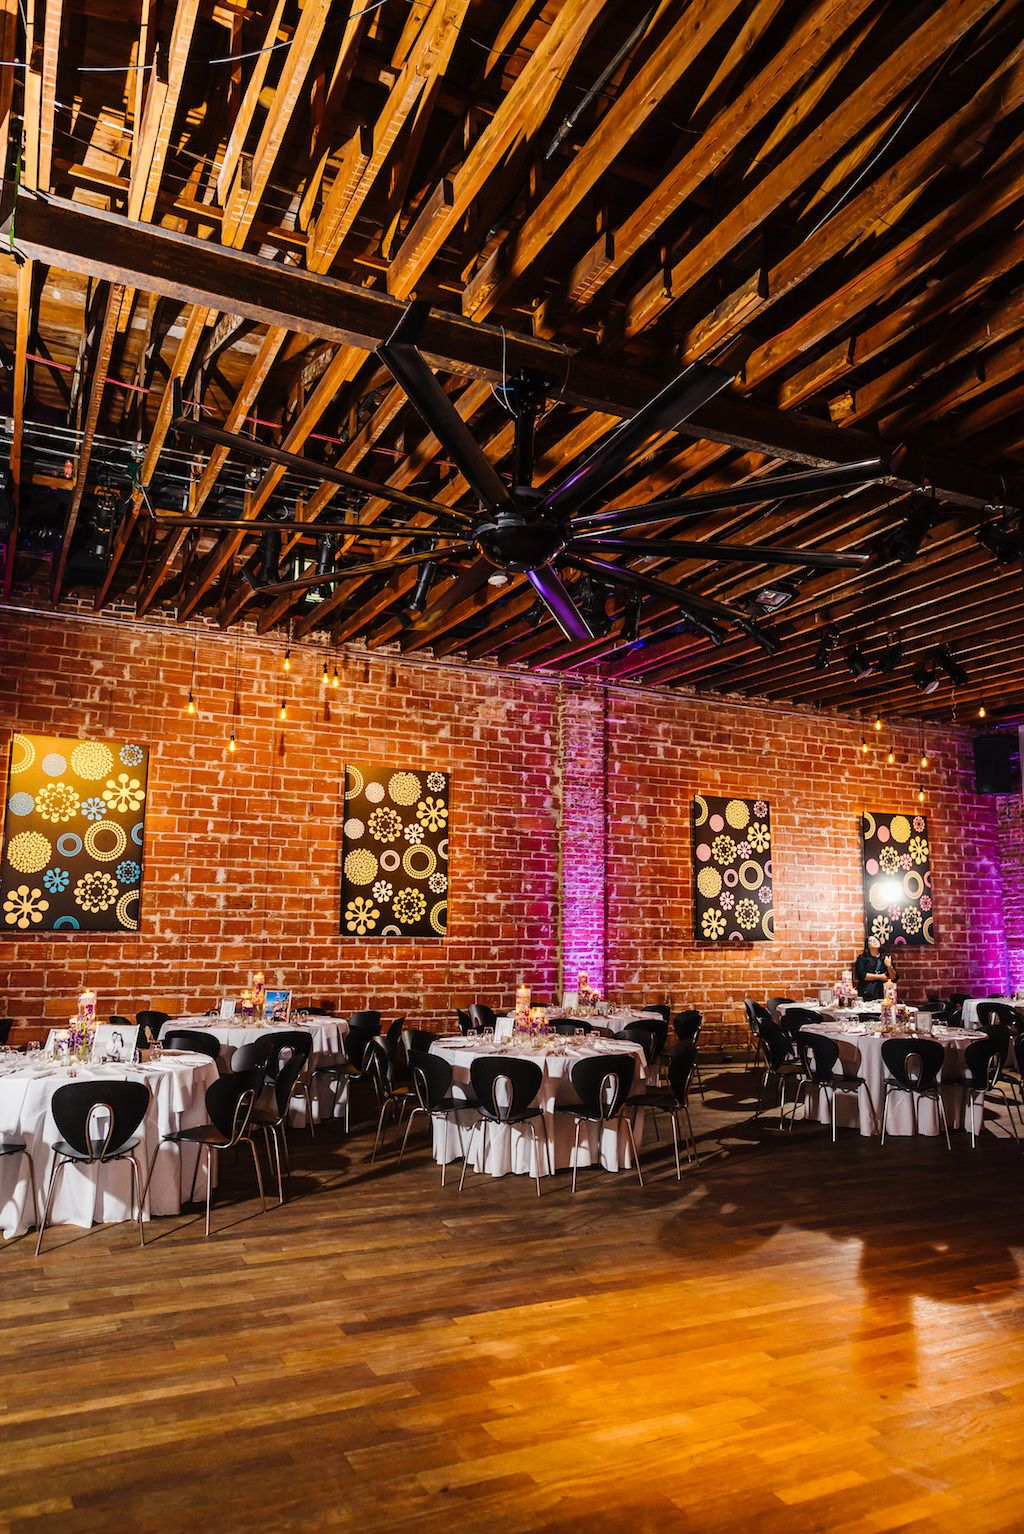 Downtown St Pete Historic Wedding Venue NOVA 535 Reception Decor with Modern Purple Uplighting on Exposed Brick - Whimsical St. Pete wedding at unique event venue NOVA 535